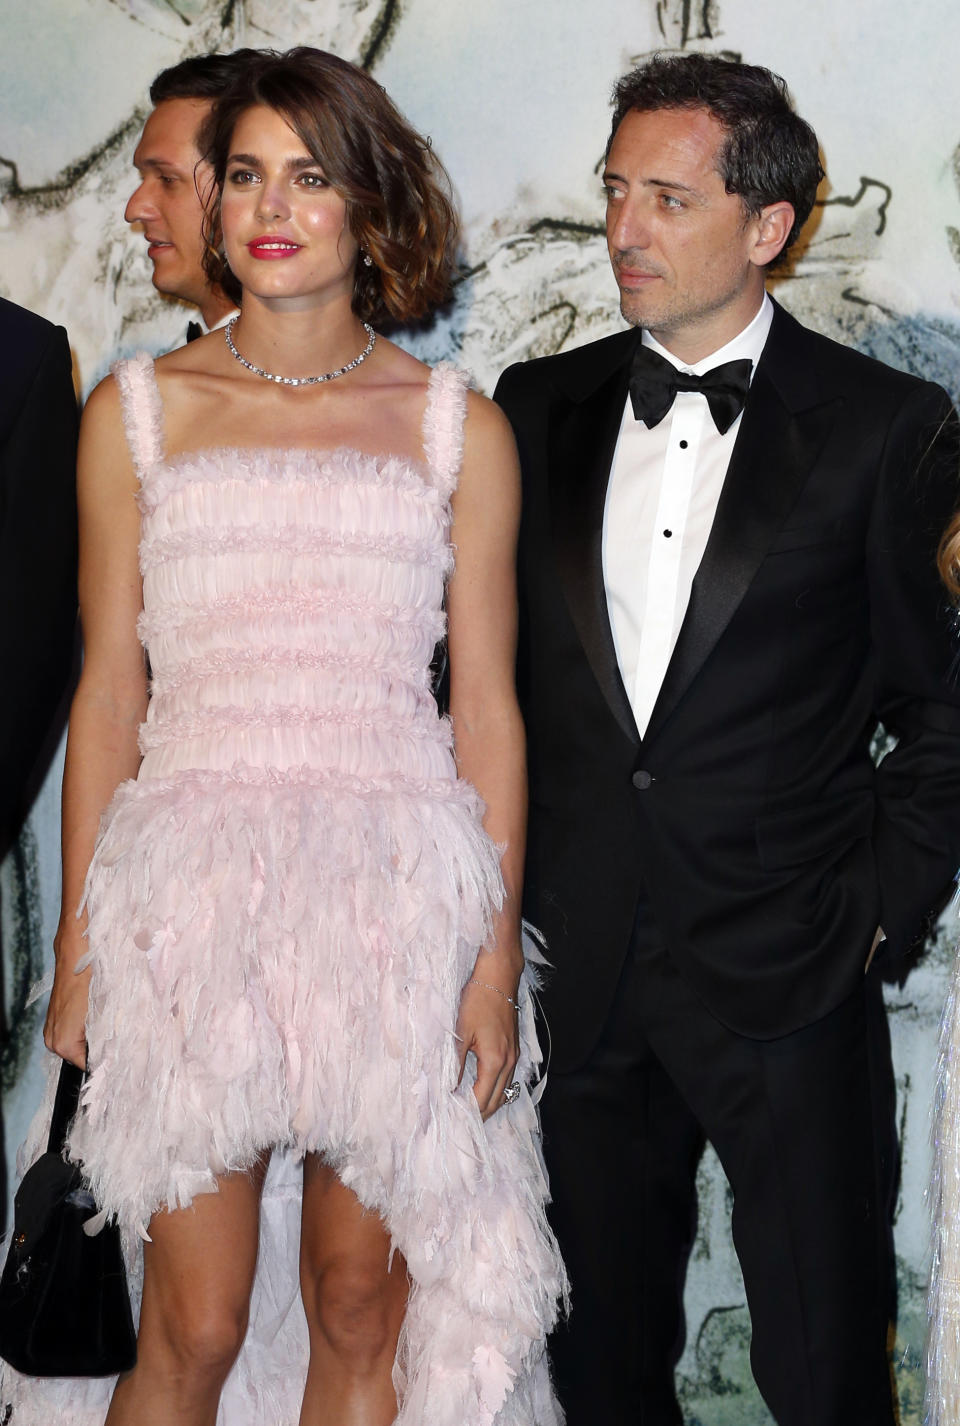 "Charlotte Casiraghi and French humorist Gad Elmaleh poses prior to the annual Rose Ball at the Monte-Carlo Sporting Club in Monaco, on March 23, 2013. The Rose Ball is one of the major charity events in Monaco. Created in 1954, it benefits the Princess Grace Foundation. Directed by German Couturier Karl Lagerfeld, this year's event named ""La Belle Epoque"" (Beautiful Era), was celebrated in honor of the Societe des bains de mer (SBM),  a prominent player in Monaco's tourism industry. AFP PHOTO /POOL/ VALERY HACHE        (Photo credit should read VALERY HACHE/AFP via Getty Images)"